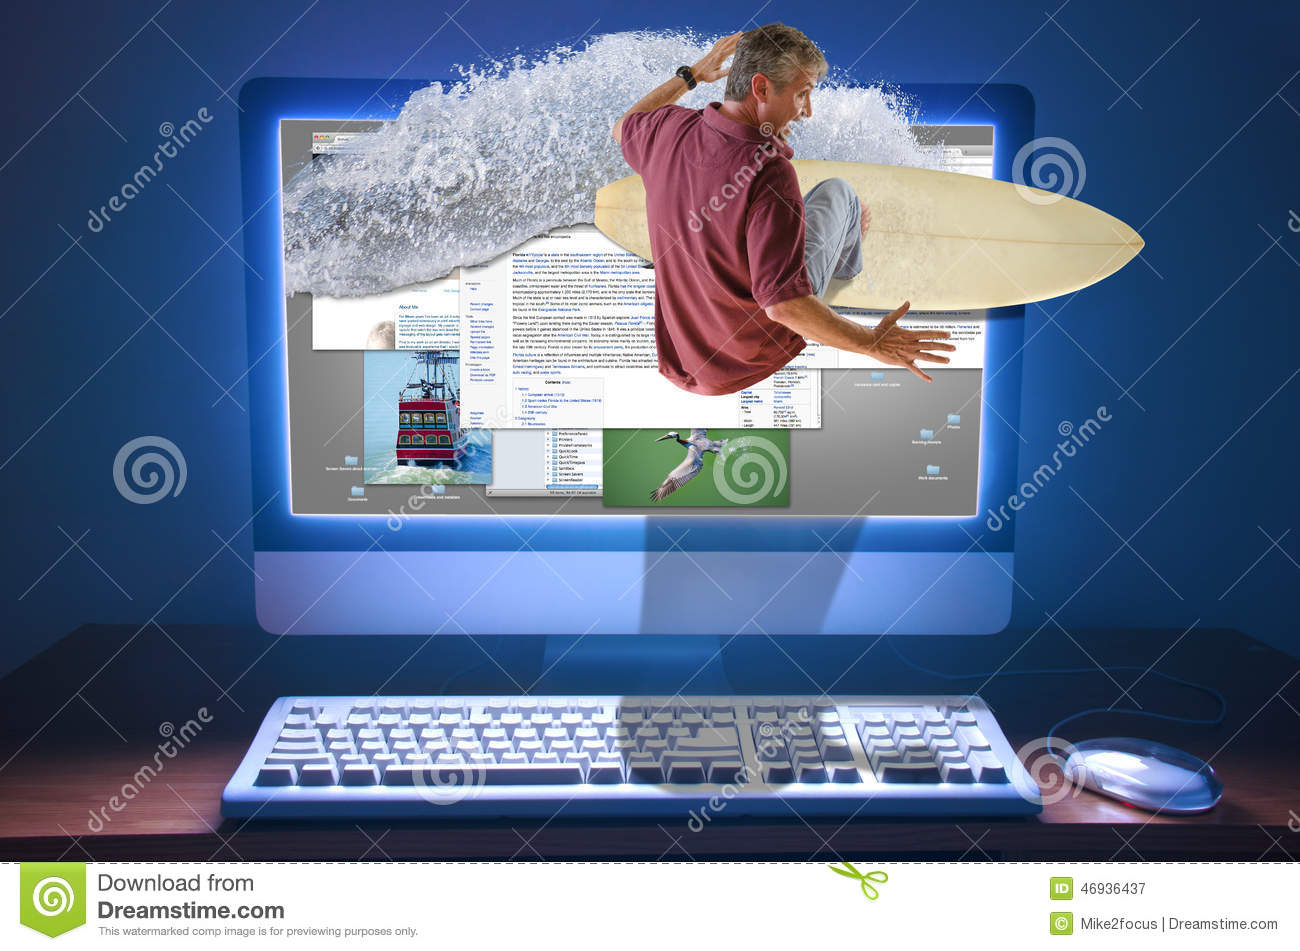 surfing the internet on company time Examples of stealing company time become more widespread in this age of the internet and social media -- time but surfing the web on company time is.